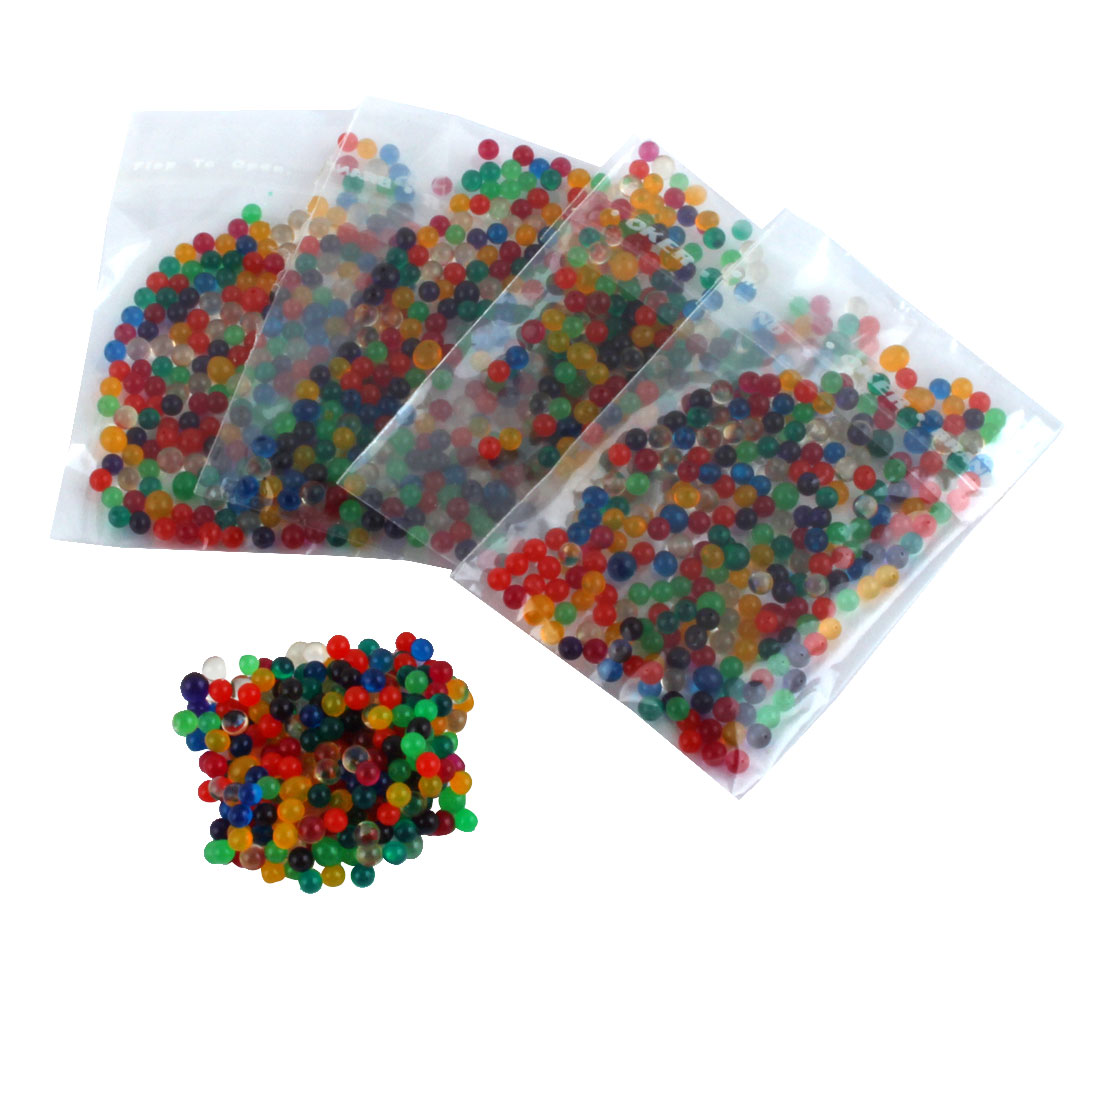 Colorful Magic Crystal Water Jelly Mud Soil Beads Balls